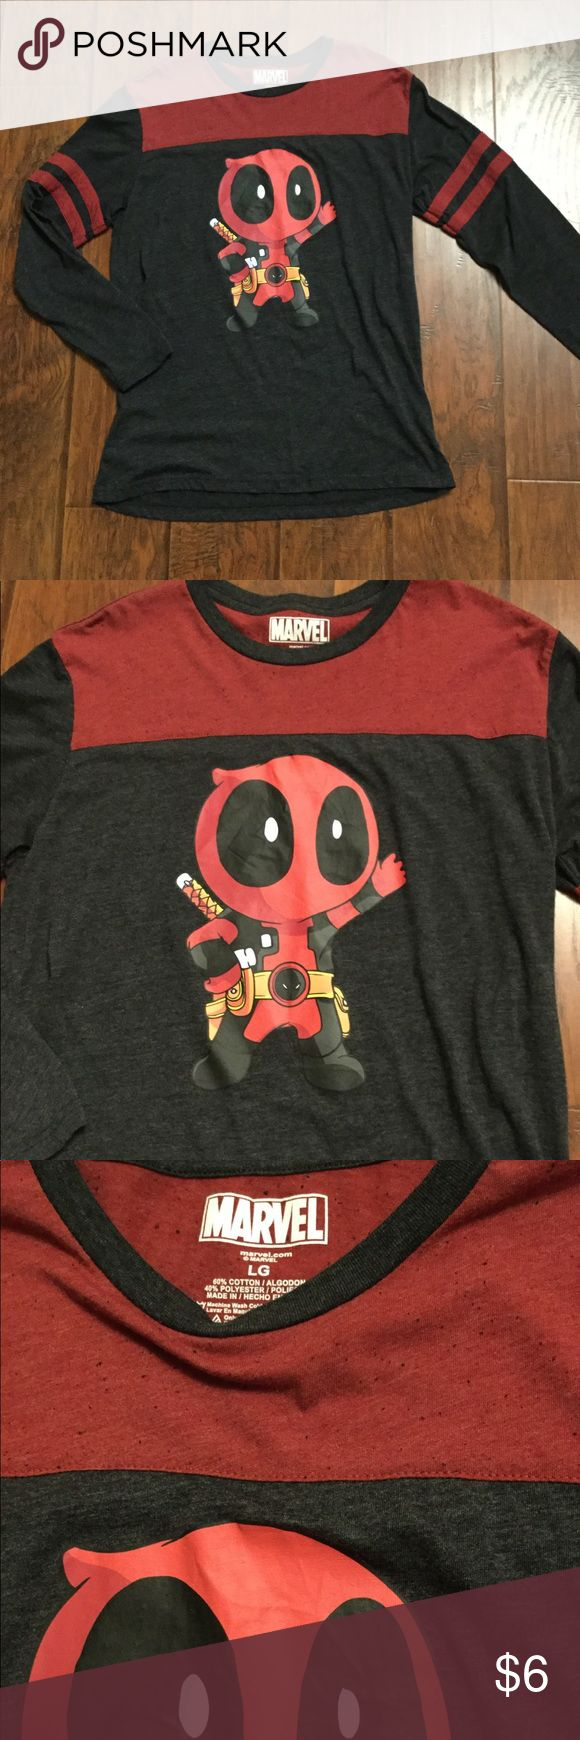 Deadpool Long-sleeve Shirt Marvel Deadpool long sleeved shirt. Cotton & polyester blend  chivi Deadpool character front design  size Large and in perfect like new condition! Marvel Shirts Tees - Long Sleeve